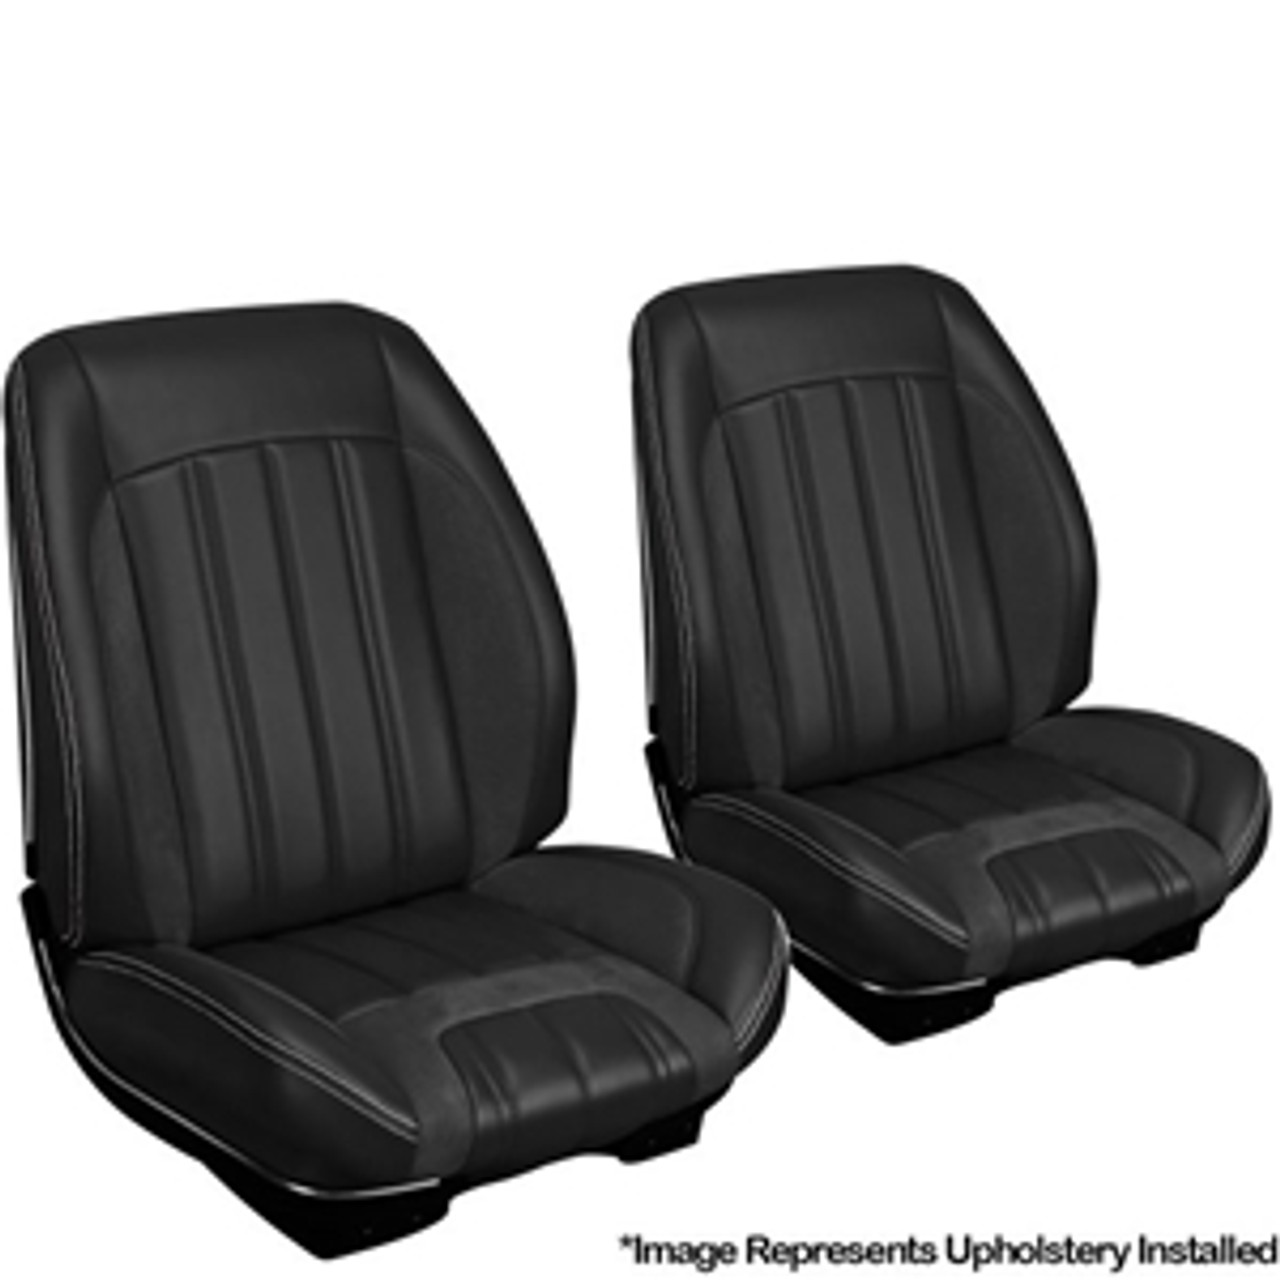 1966 TMI Chevelle or El Camino Sport R Style Bucket Seat Cover Kit